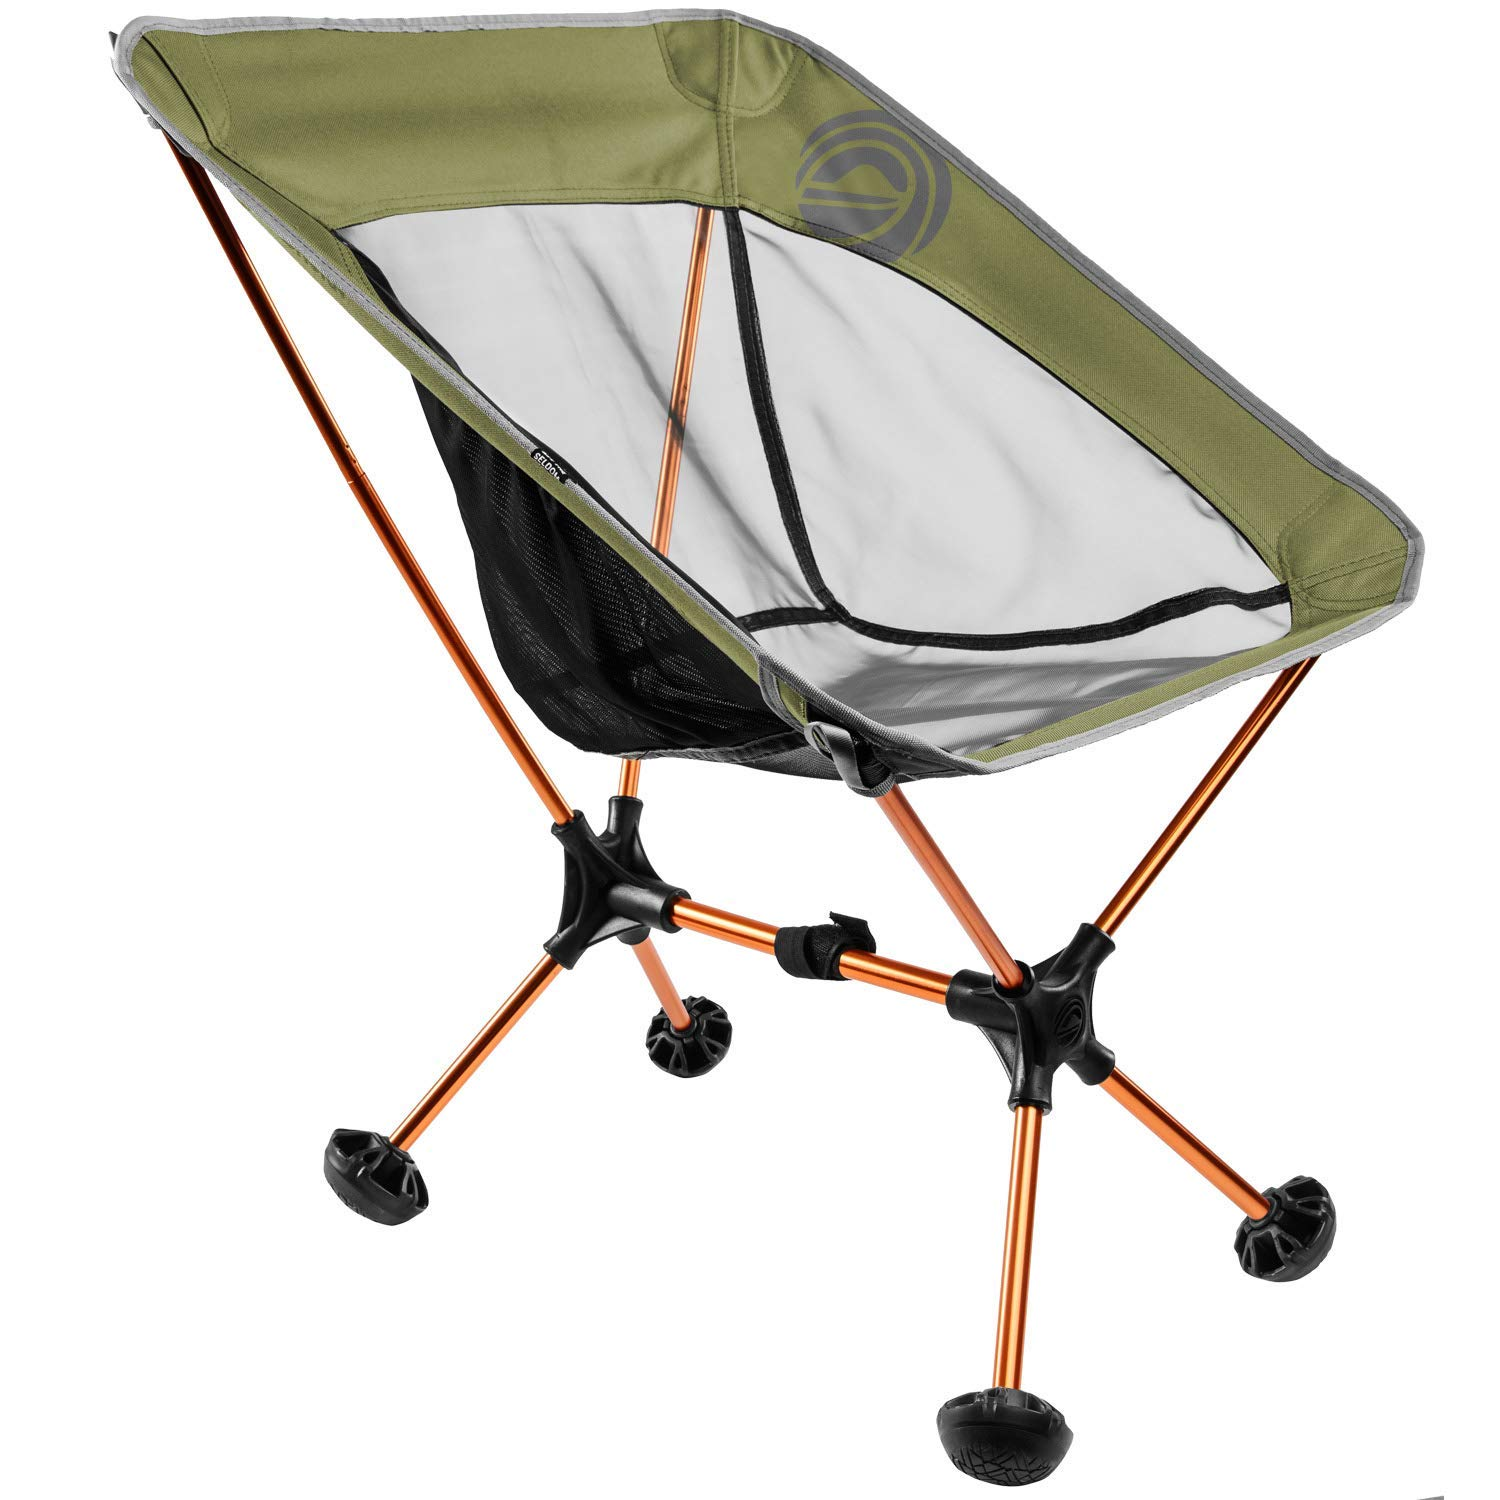 Terralite Portable Camp Chair. in Perfect For Camping, Chair. Beach, Sink Backpacking & Outdoor Festivals. Compact & Heavy Duty (Supports 300 lbs). Includes TerraGrip Feet- Won't Sink in the Sand or Mud. [並行輸入品] B07R3Y5W7T, アクセサリーCoralBlue:50169b2f --- anime-portal.club